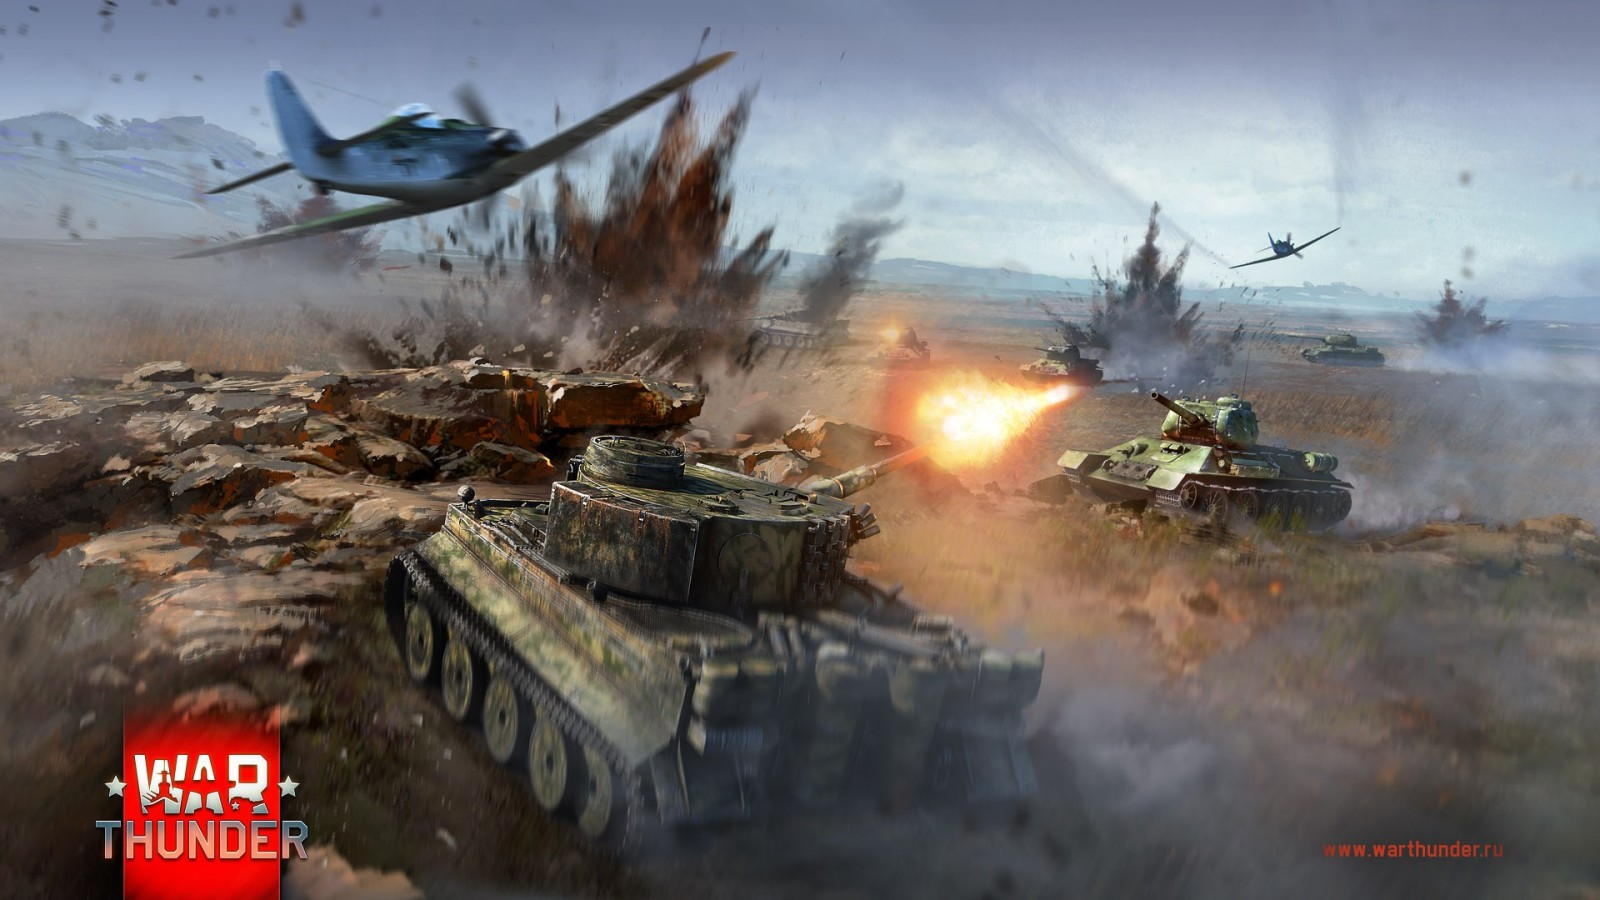 The Best World War 2 Games for PC to Choose